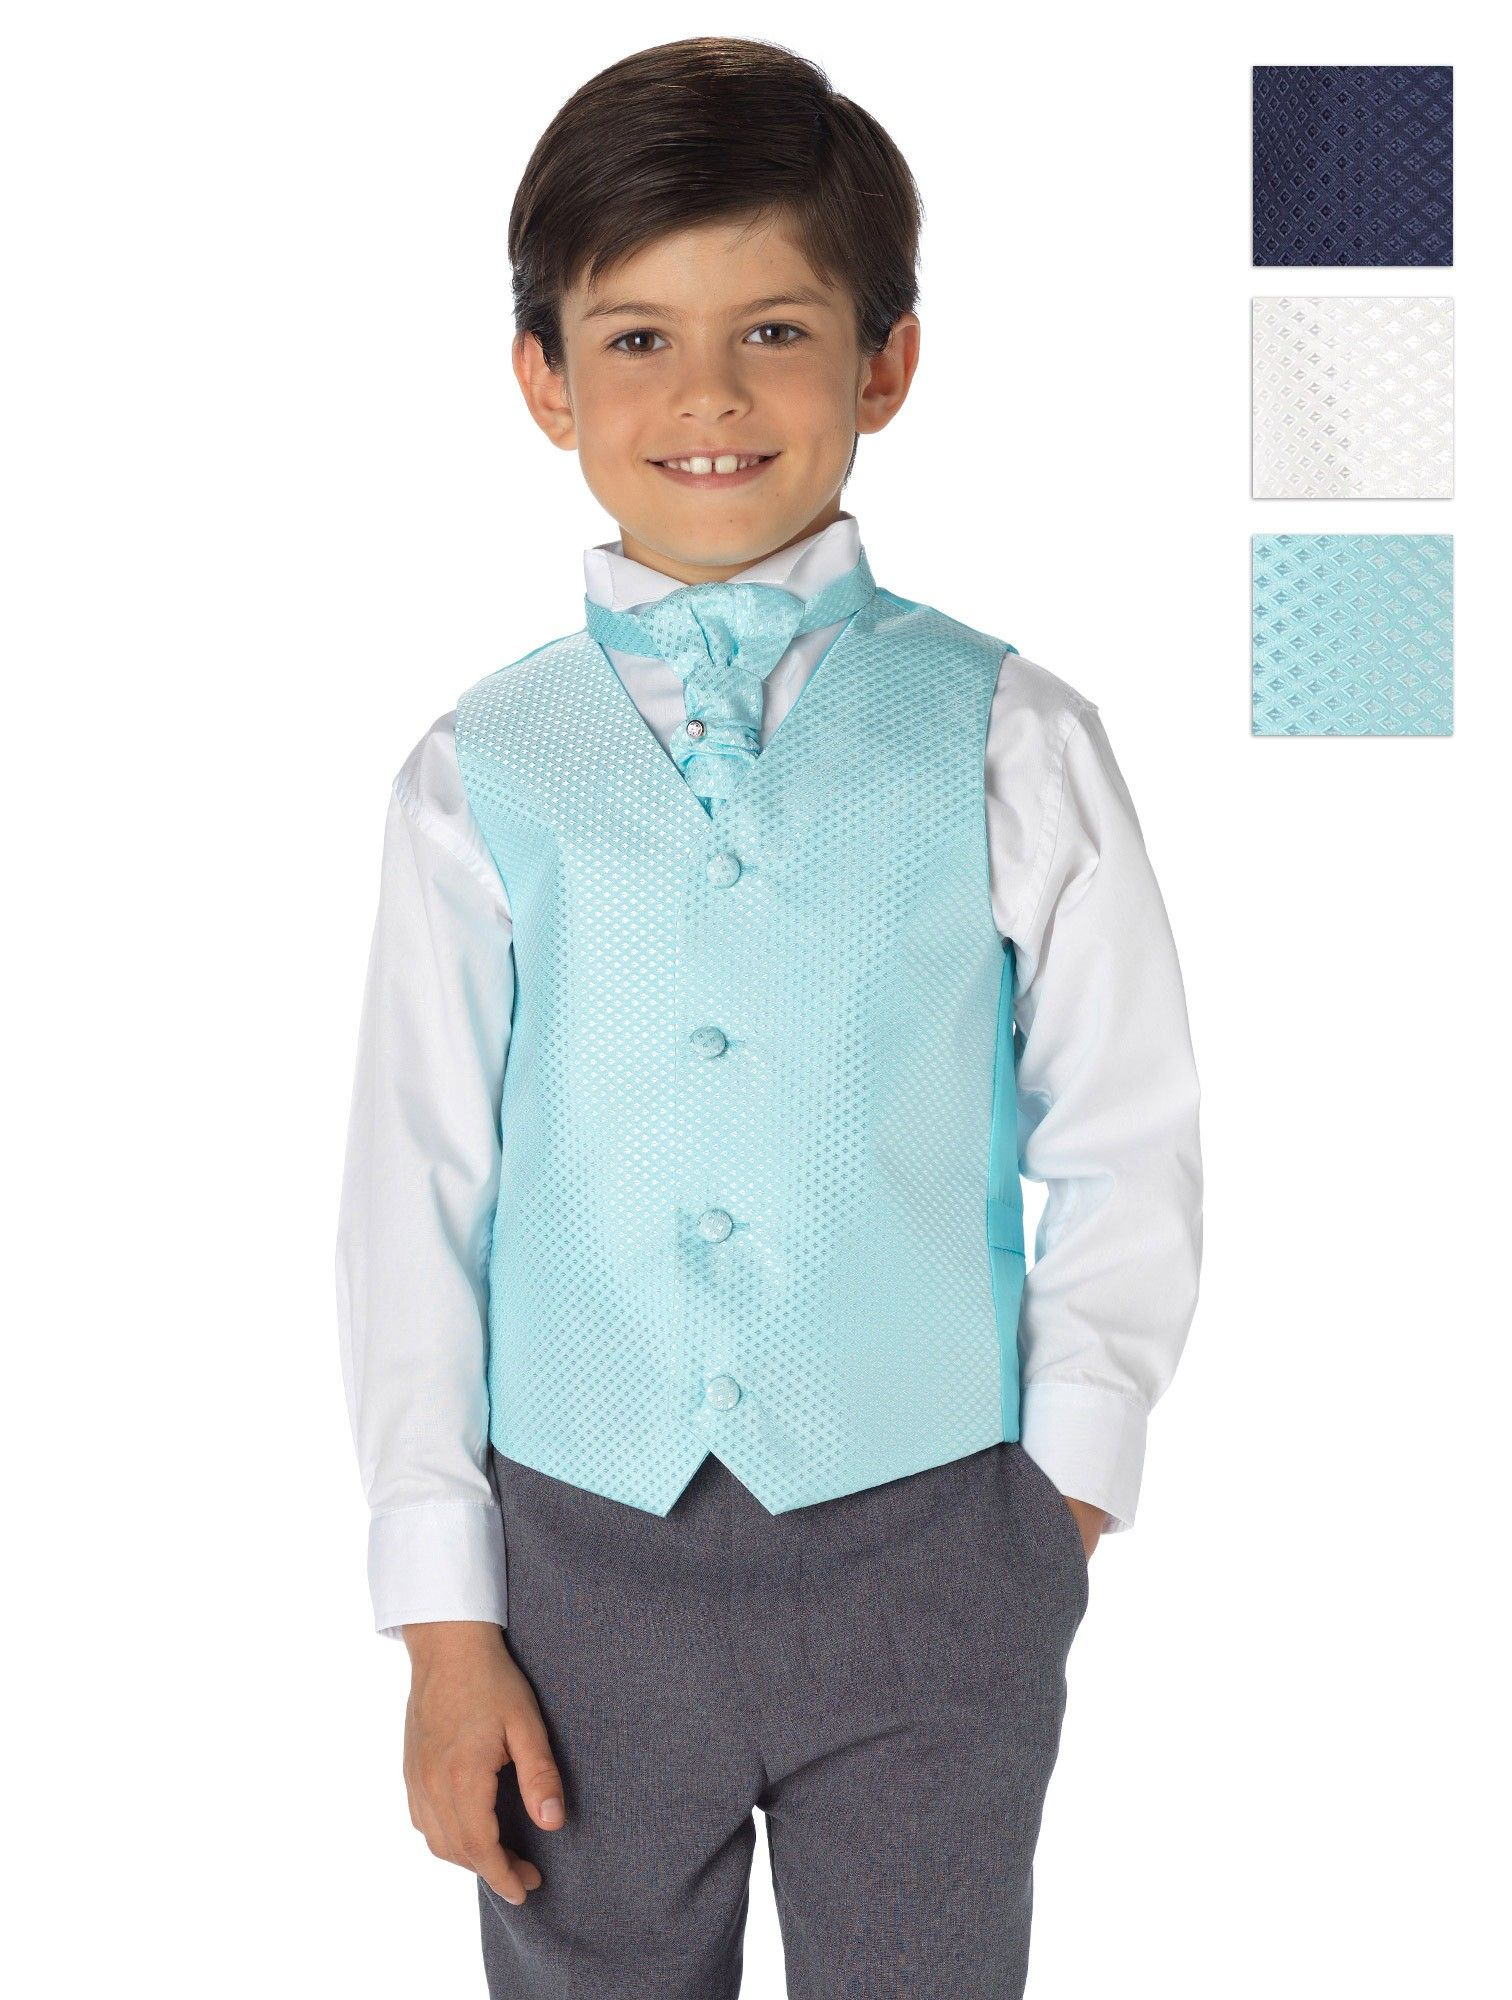 Boys waistcoat suit - Victor | Pinterest | Boys wedding suits ...